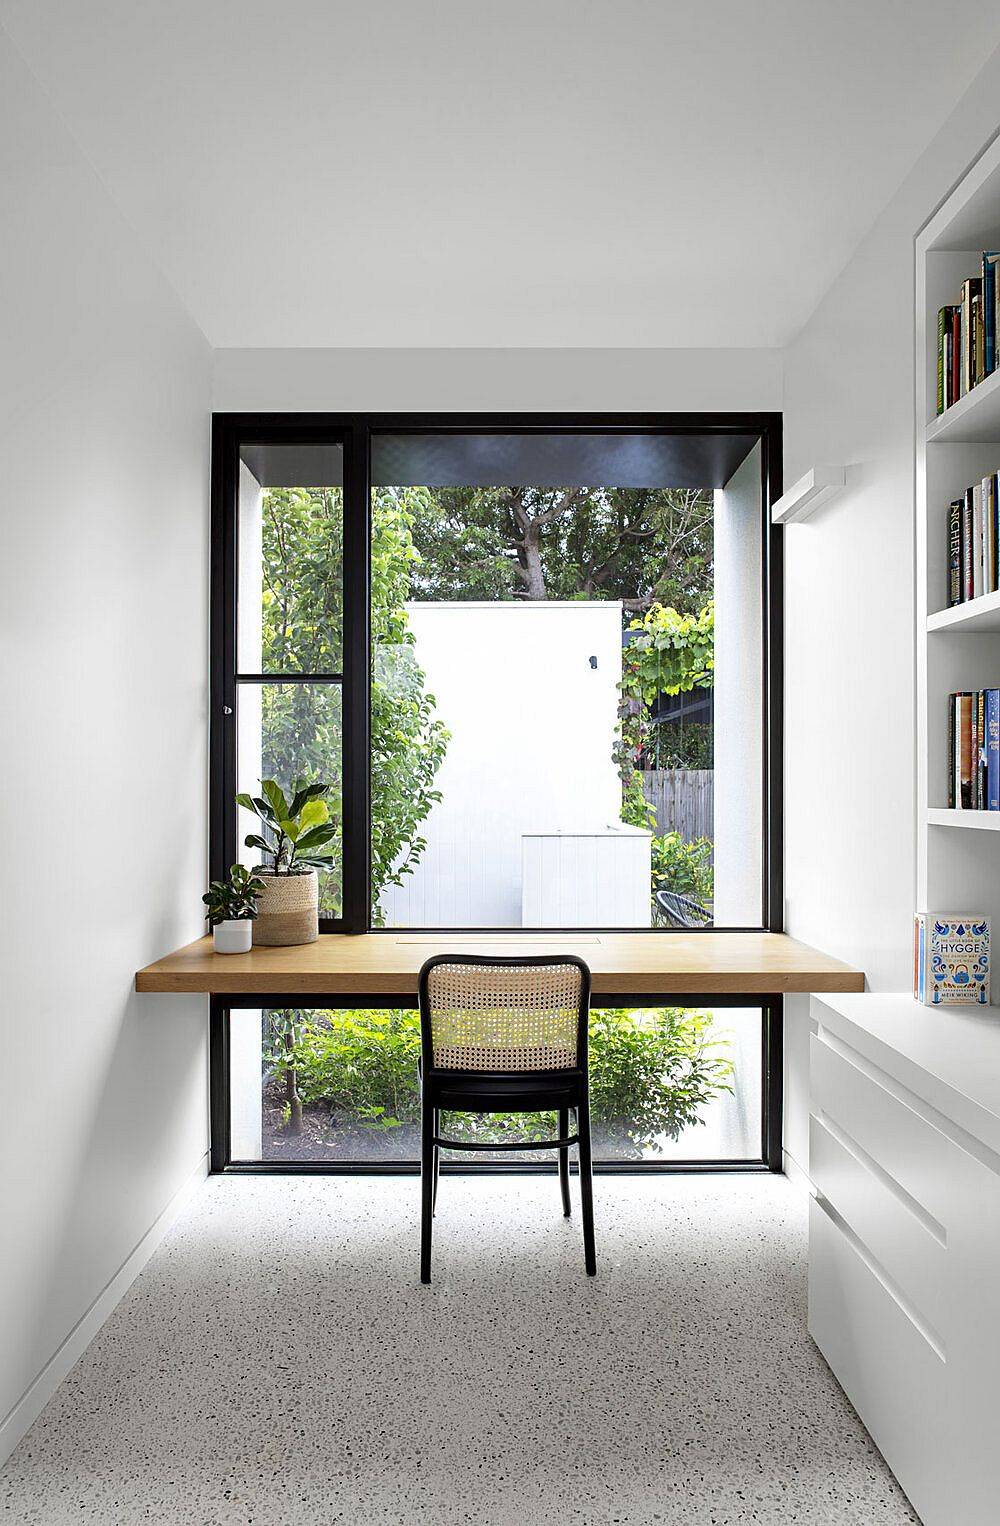 Modern-and-minimal-home-workstation-design-with-just-a-floating-wooden-plank-in-the-corner-17728